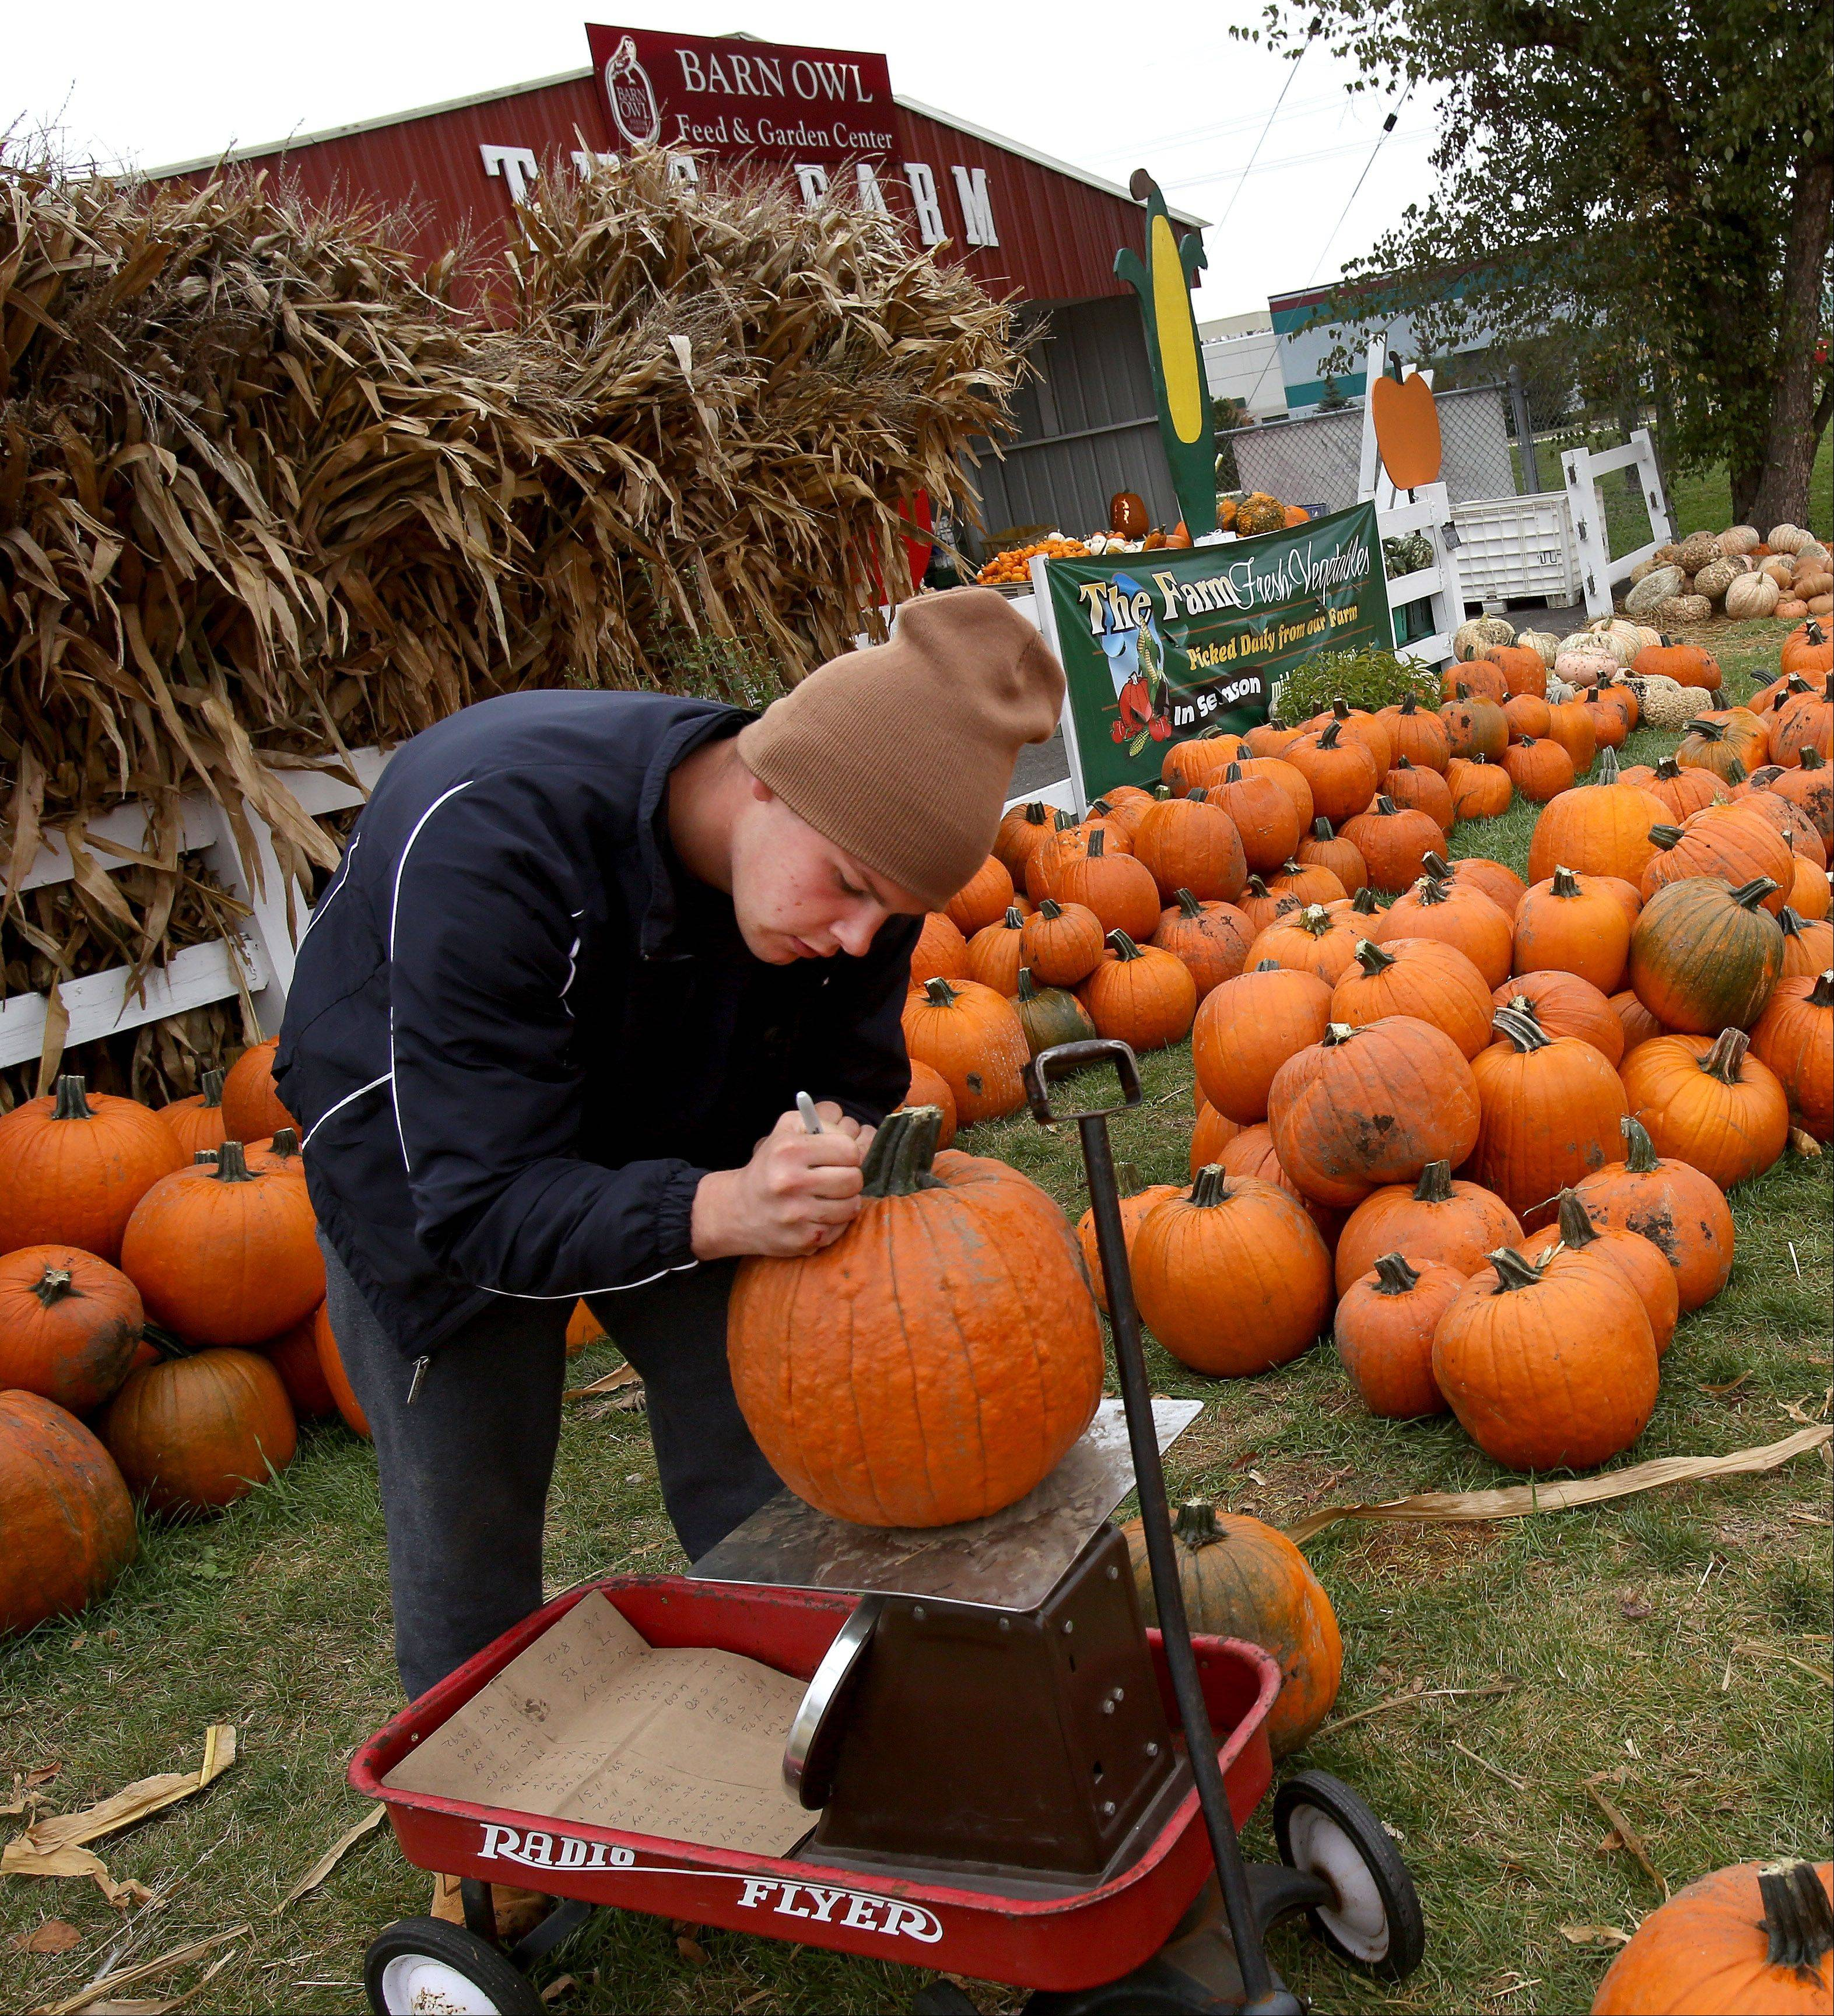 Employee Zach Dvorak weighs the pumpkins at The Farm in Carol Stream.